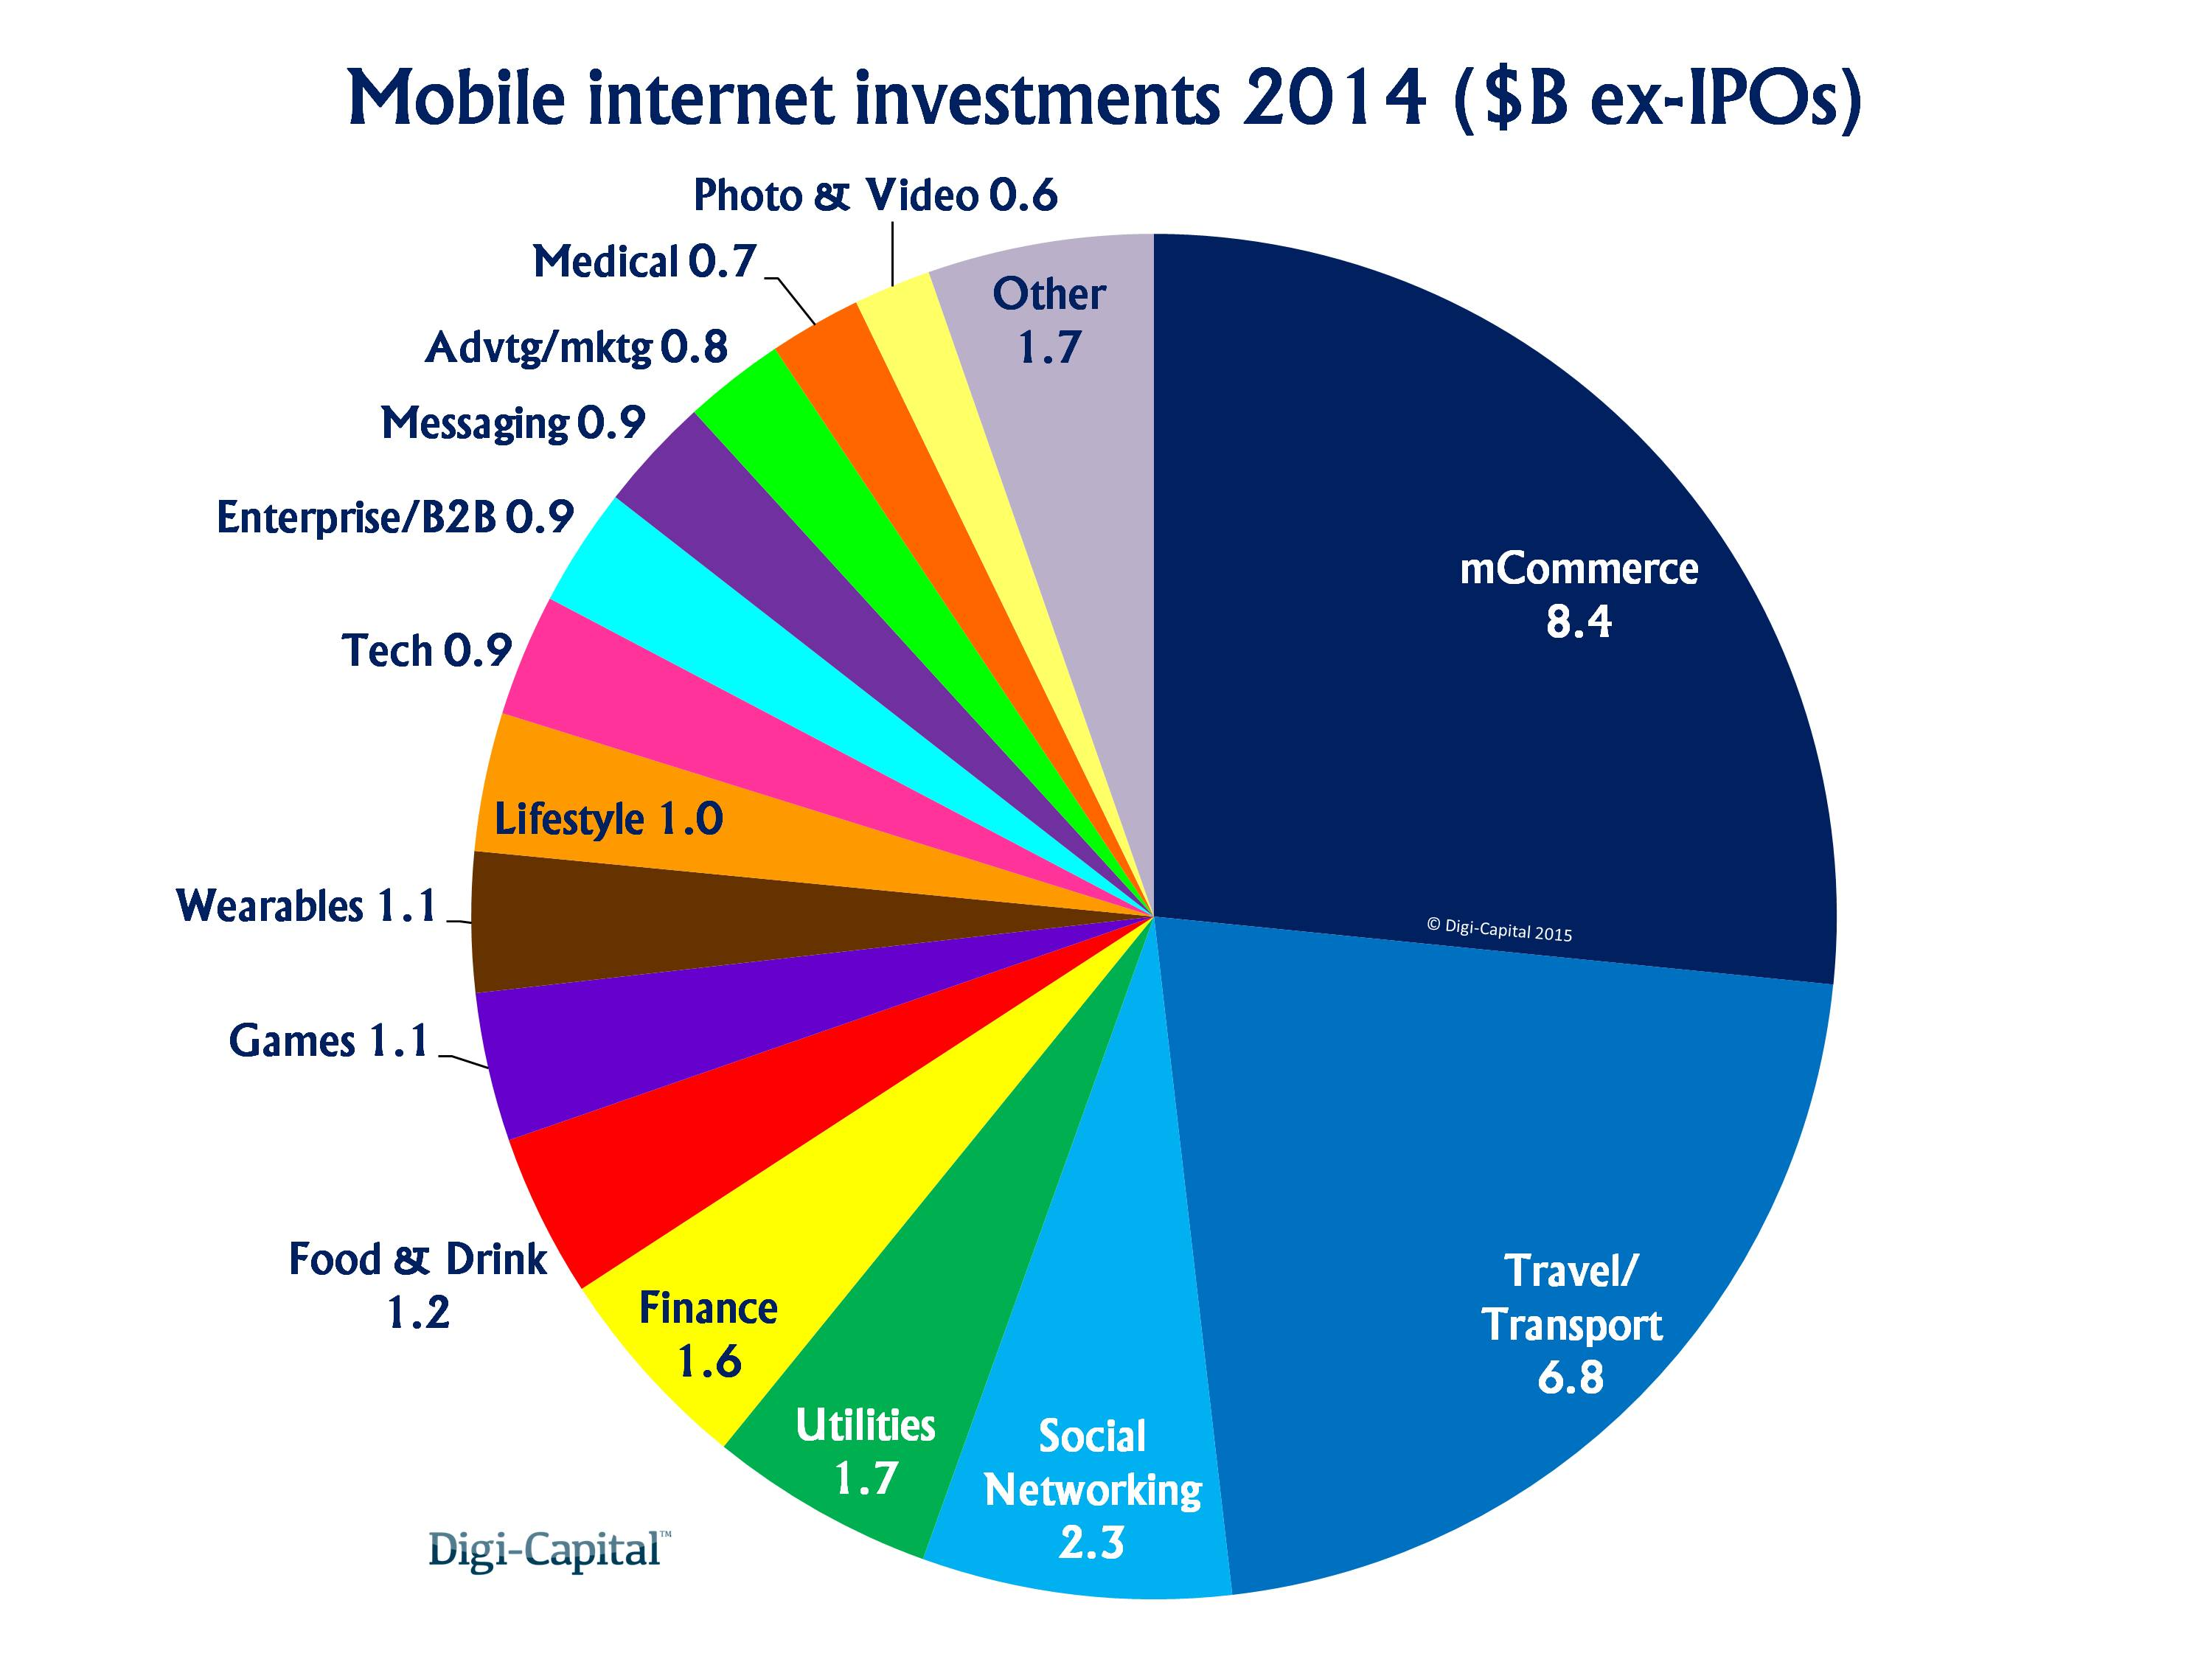 Mobile internet investments